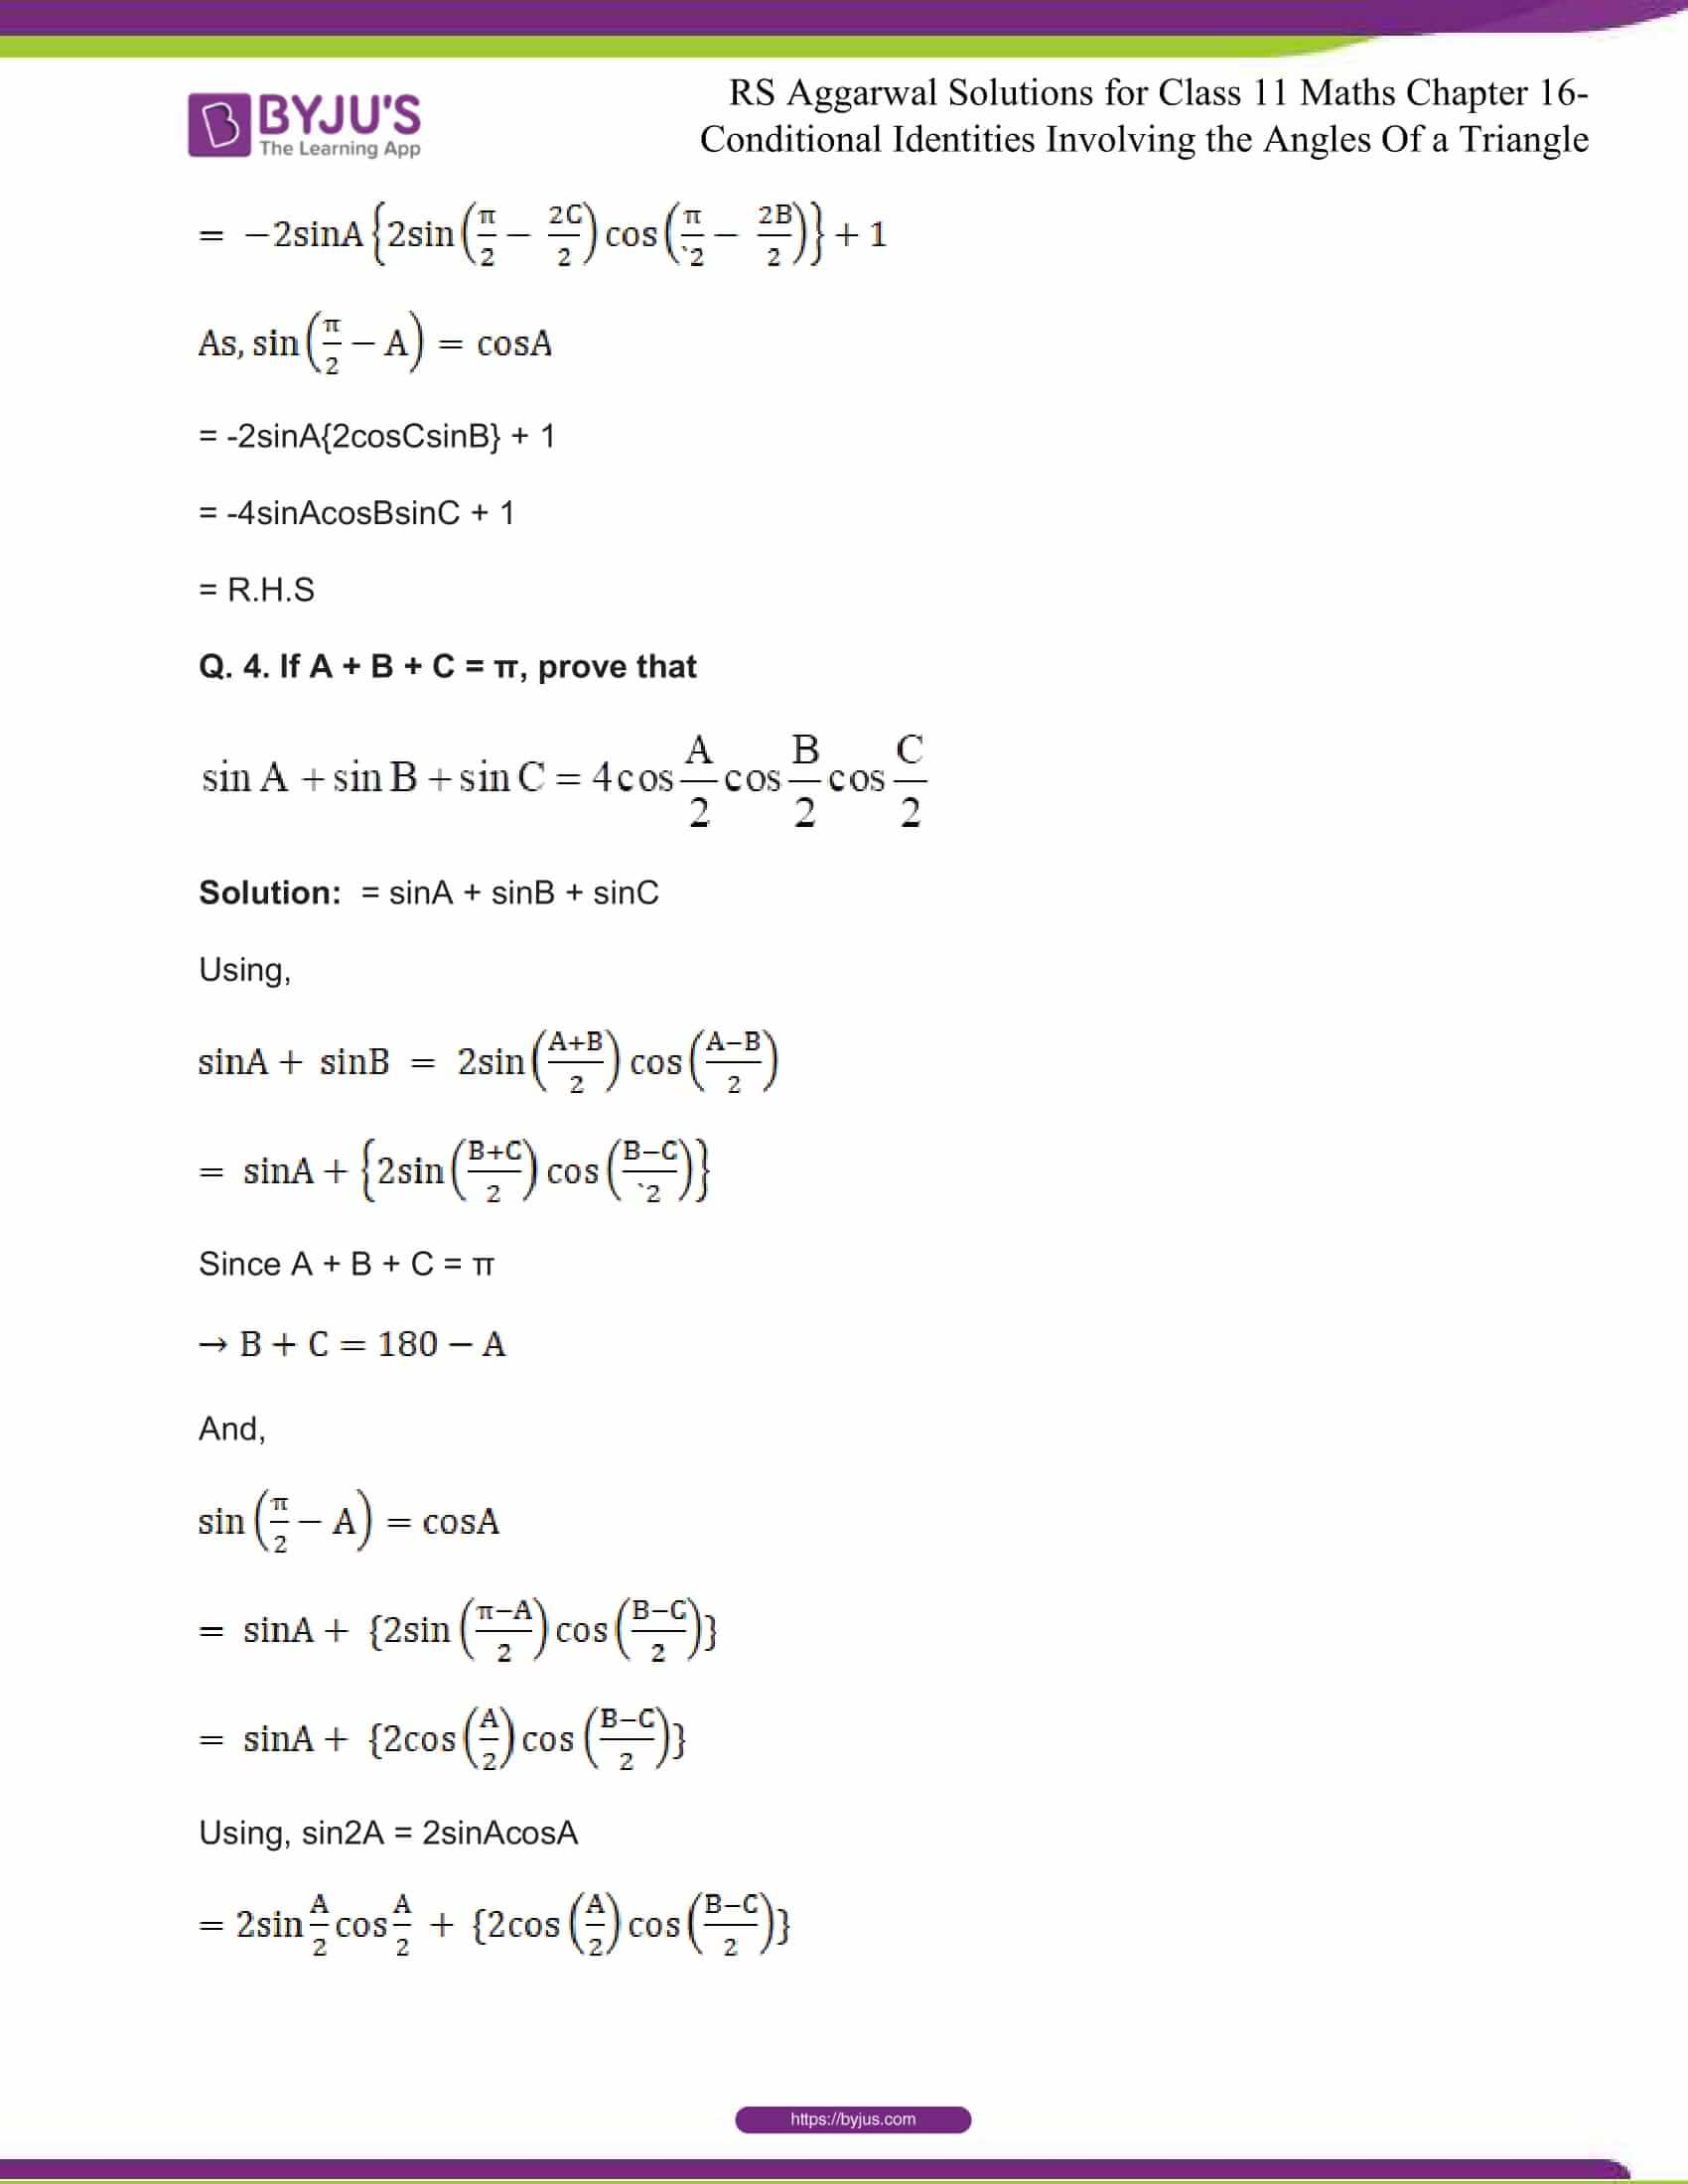 rsaggarwal solutions class 11 maths chapter 16 04